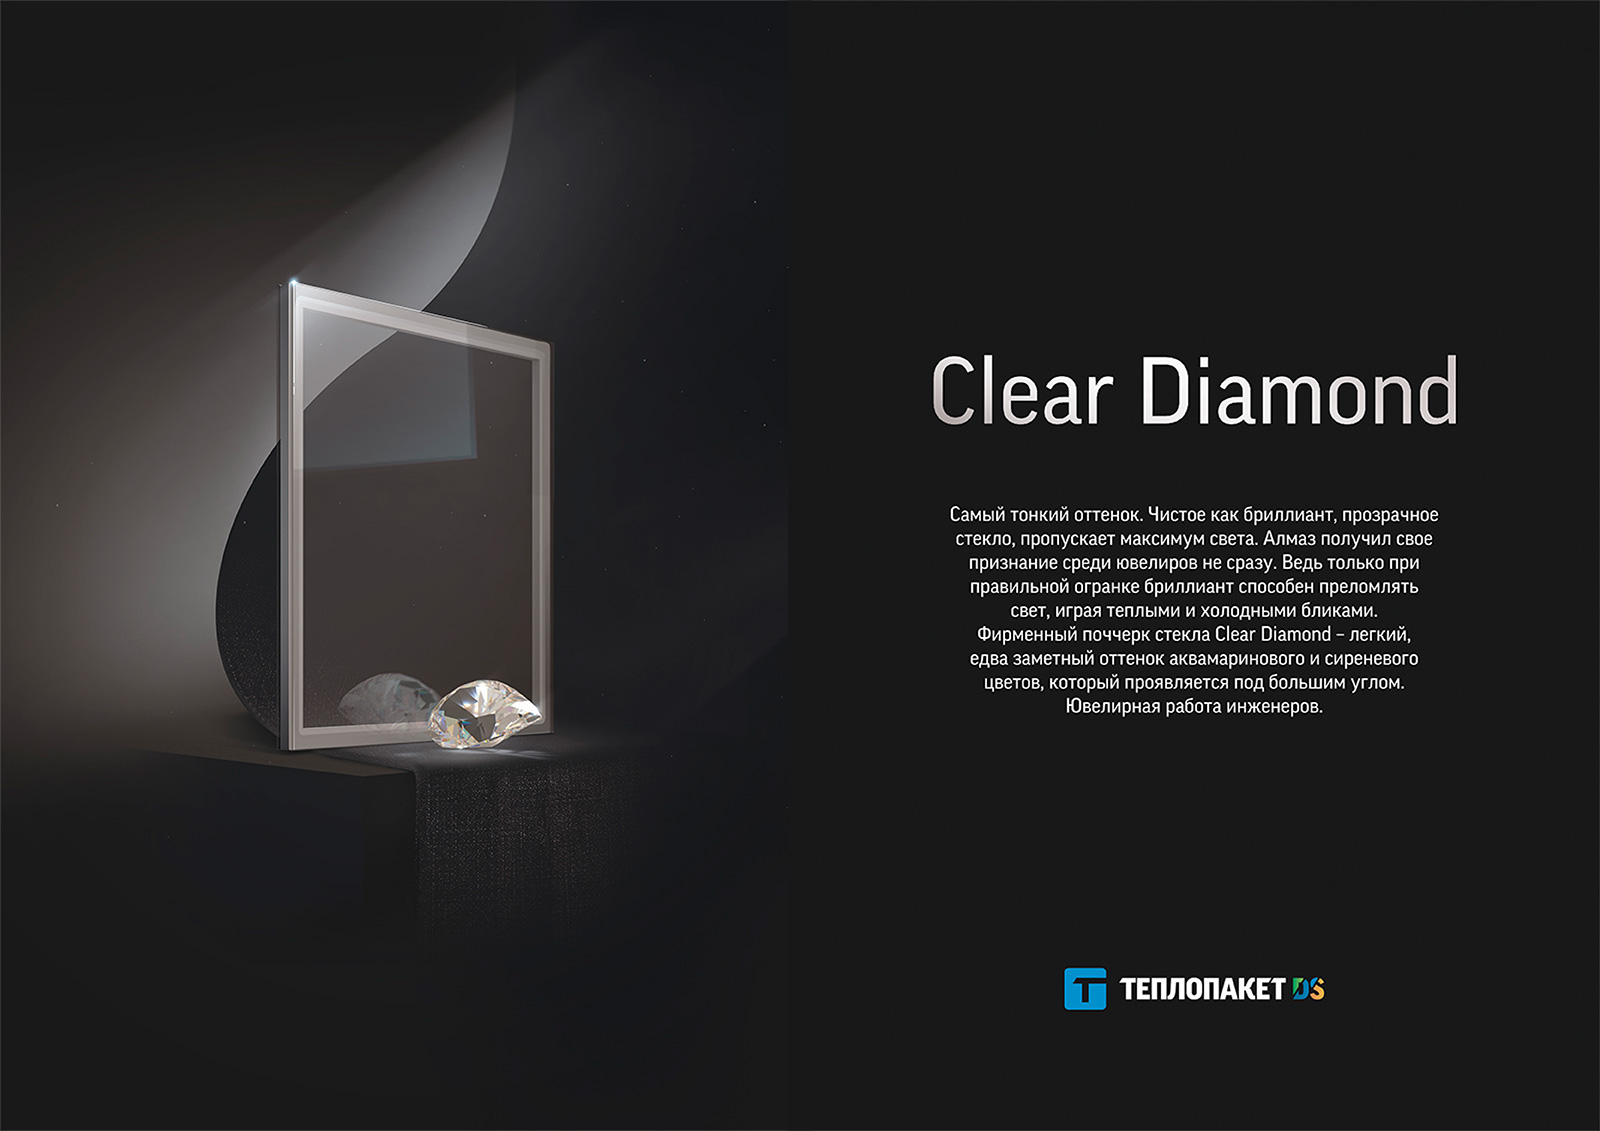 Теплопакет DS - цвет Clear Diamond